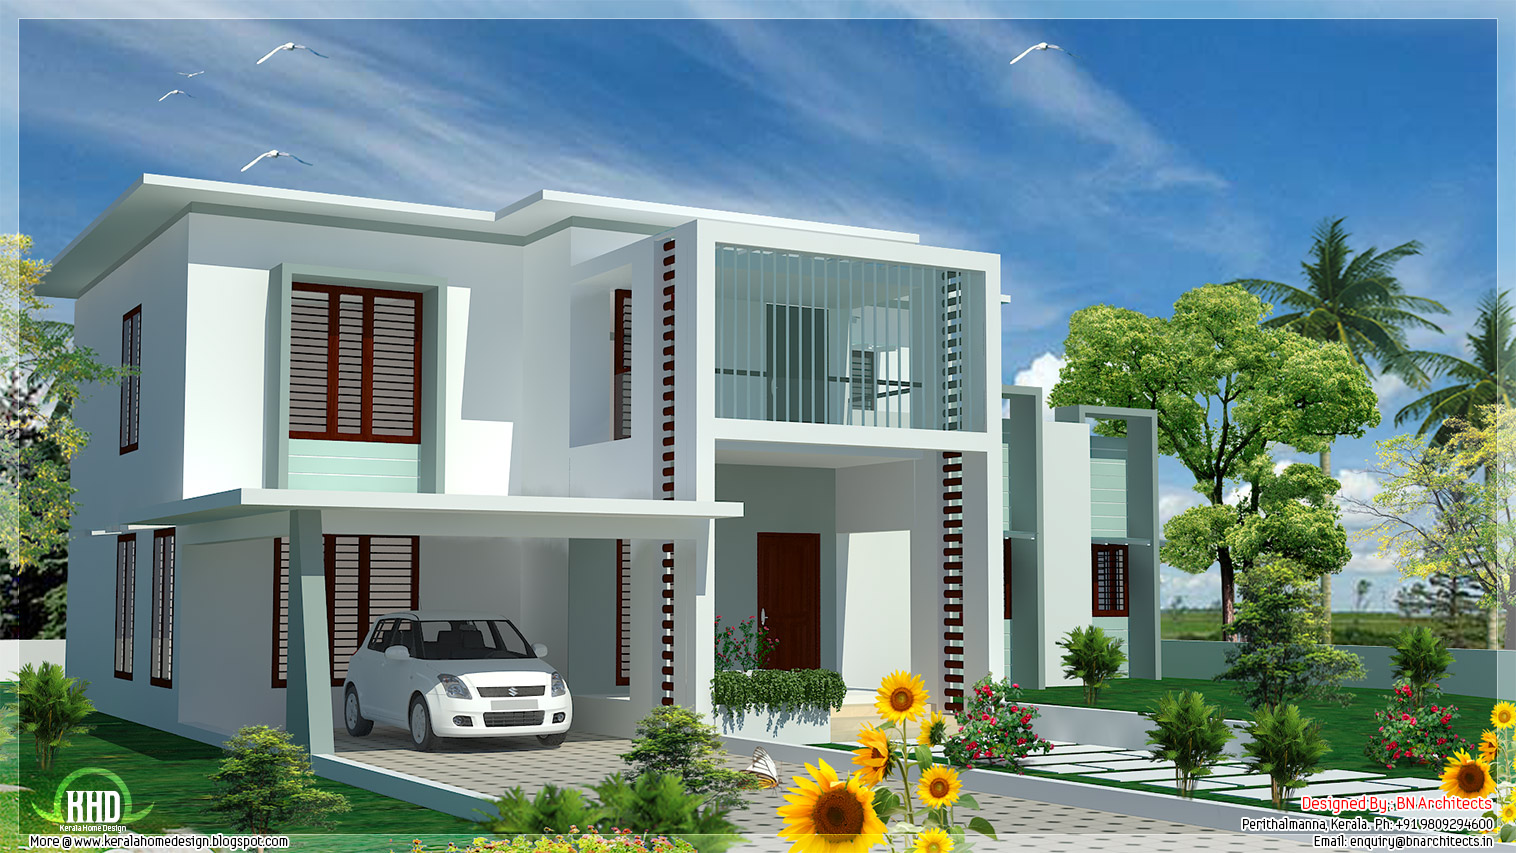 4 bedroom modern flat roof house kerala home design and for Flat roof home plans